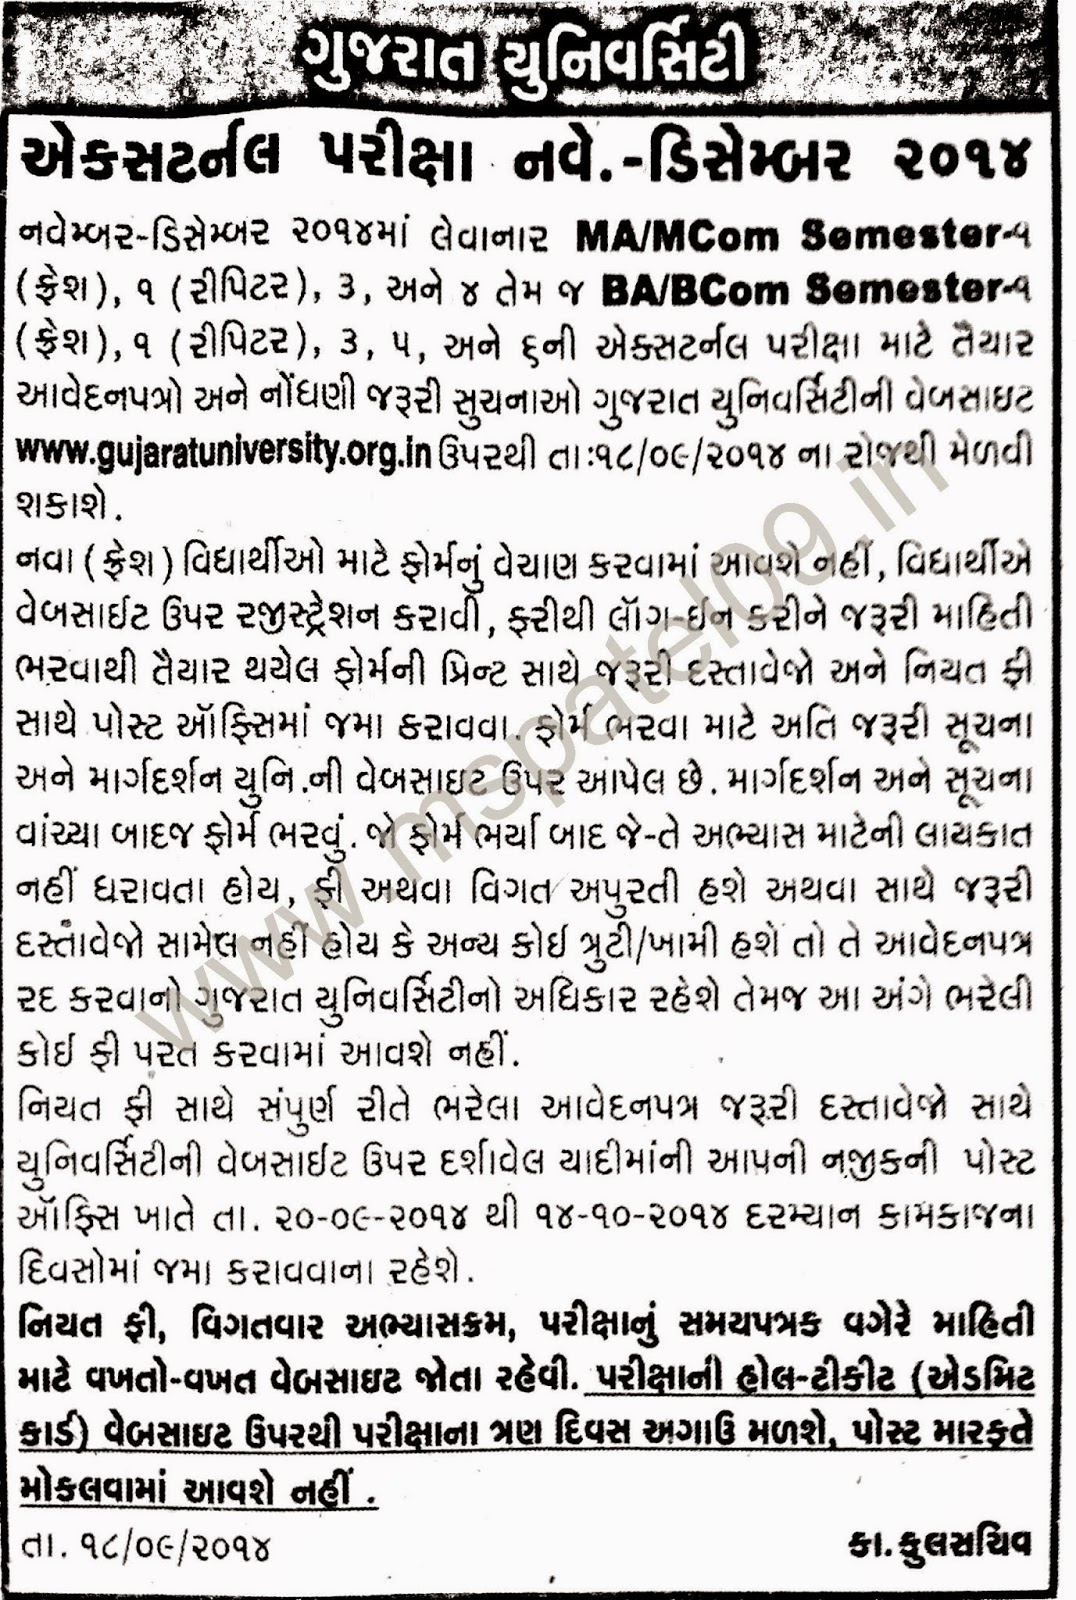 Gujarat University External Exam November-December 2014